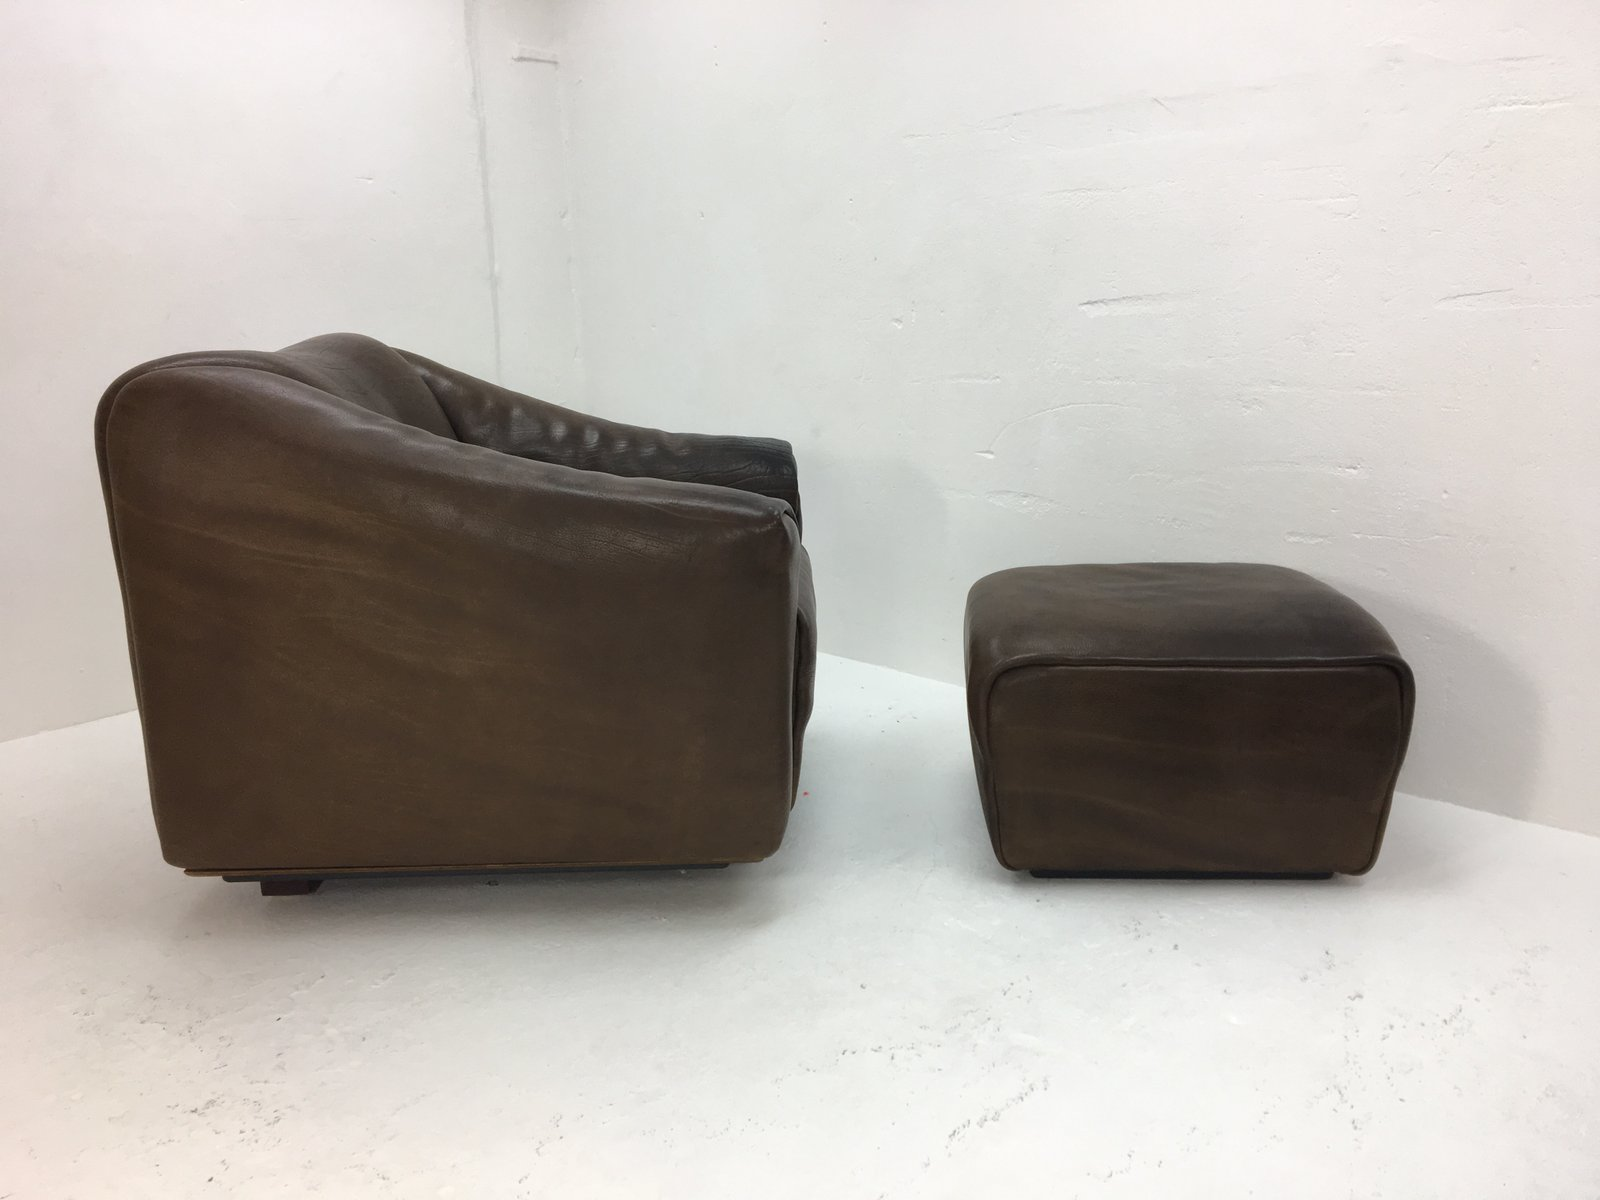 Vintage DS47 Lounge Chair with Ottoman from de Sede for sale at Pamono